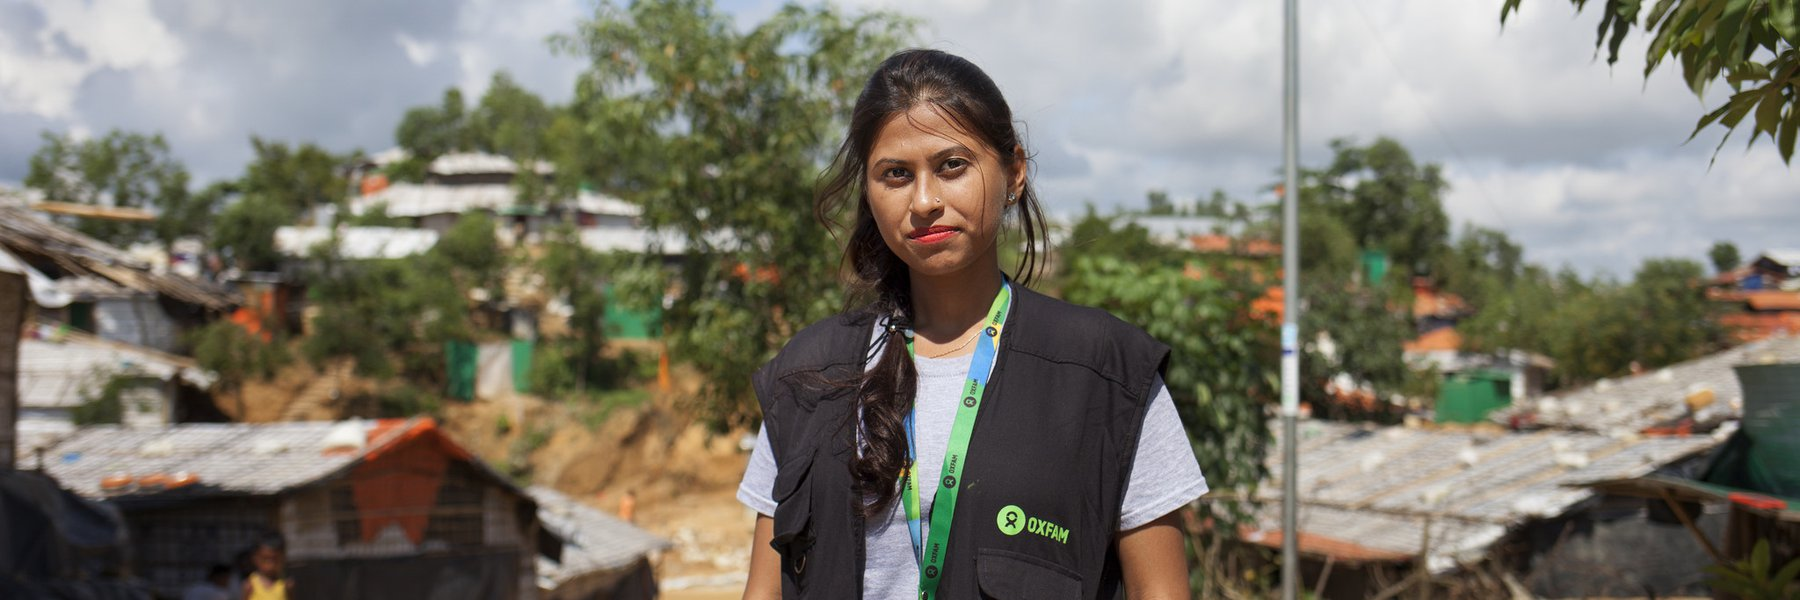 Portrait of Iffat, Oxfam aid worker